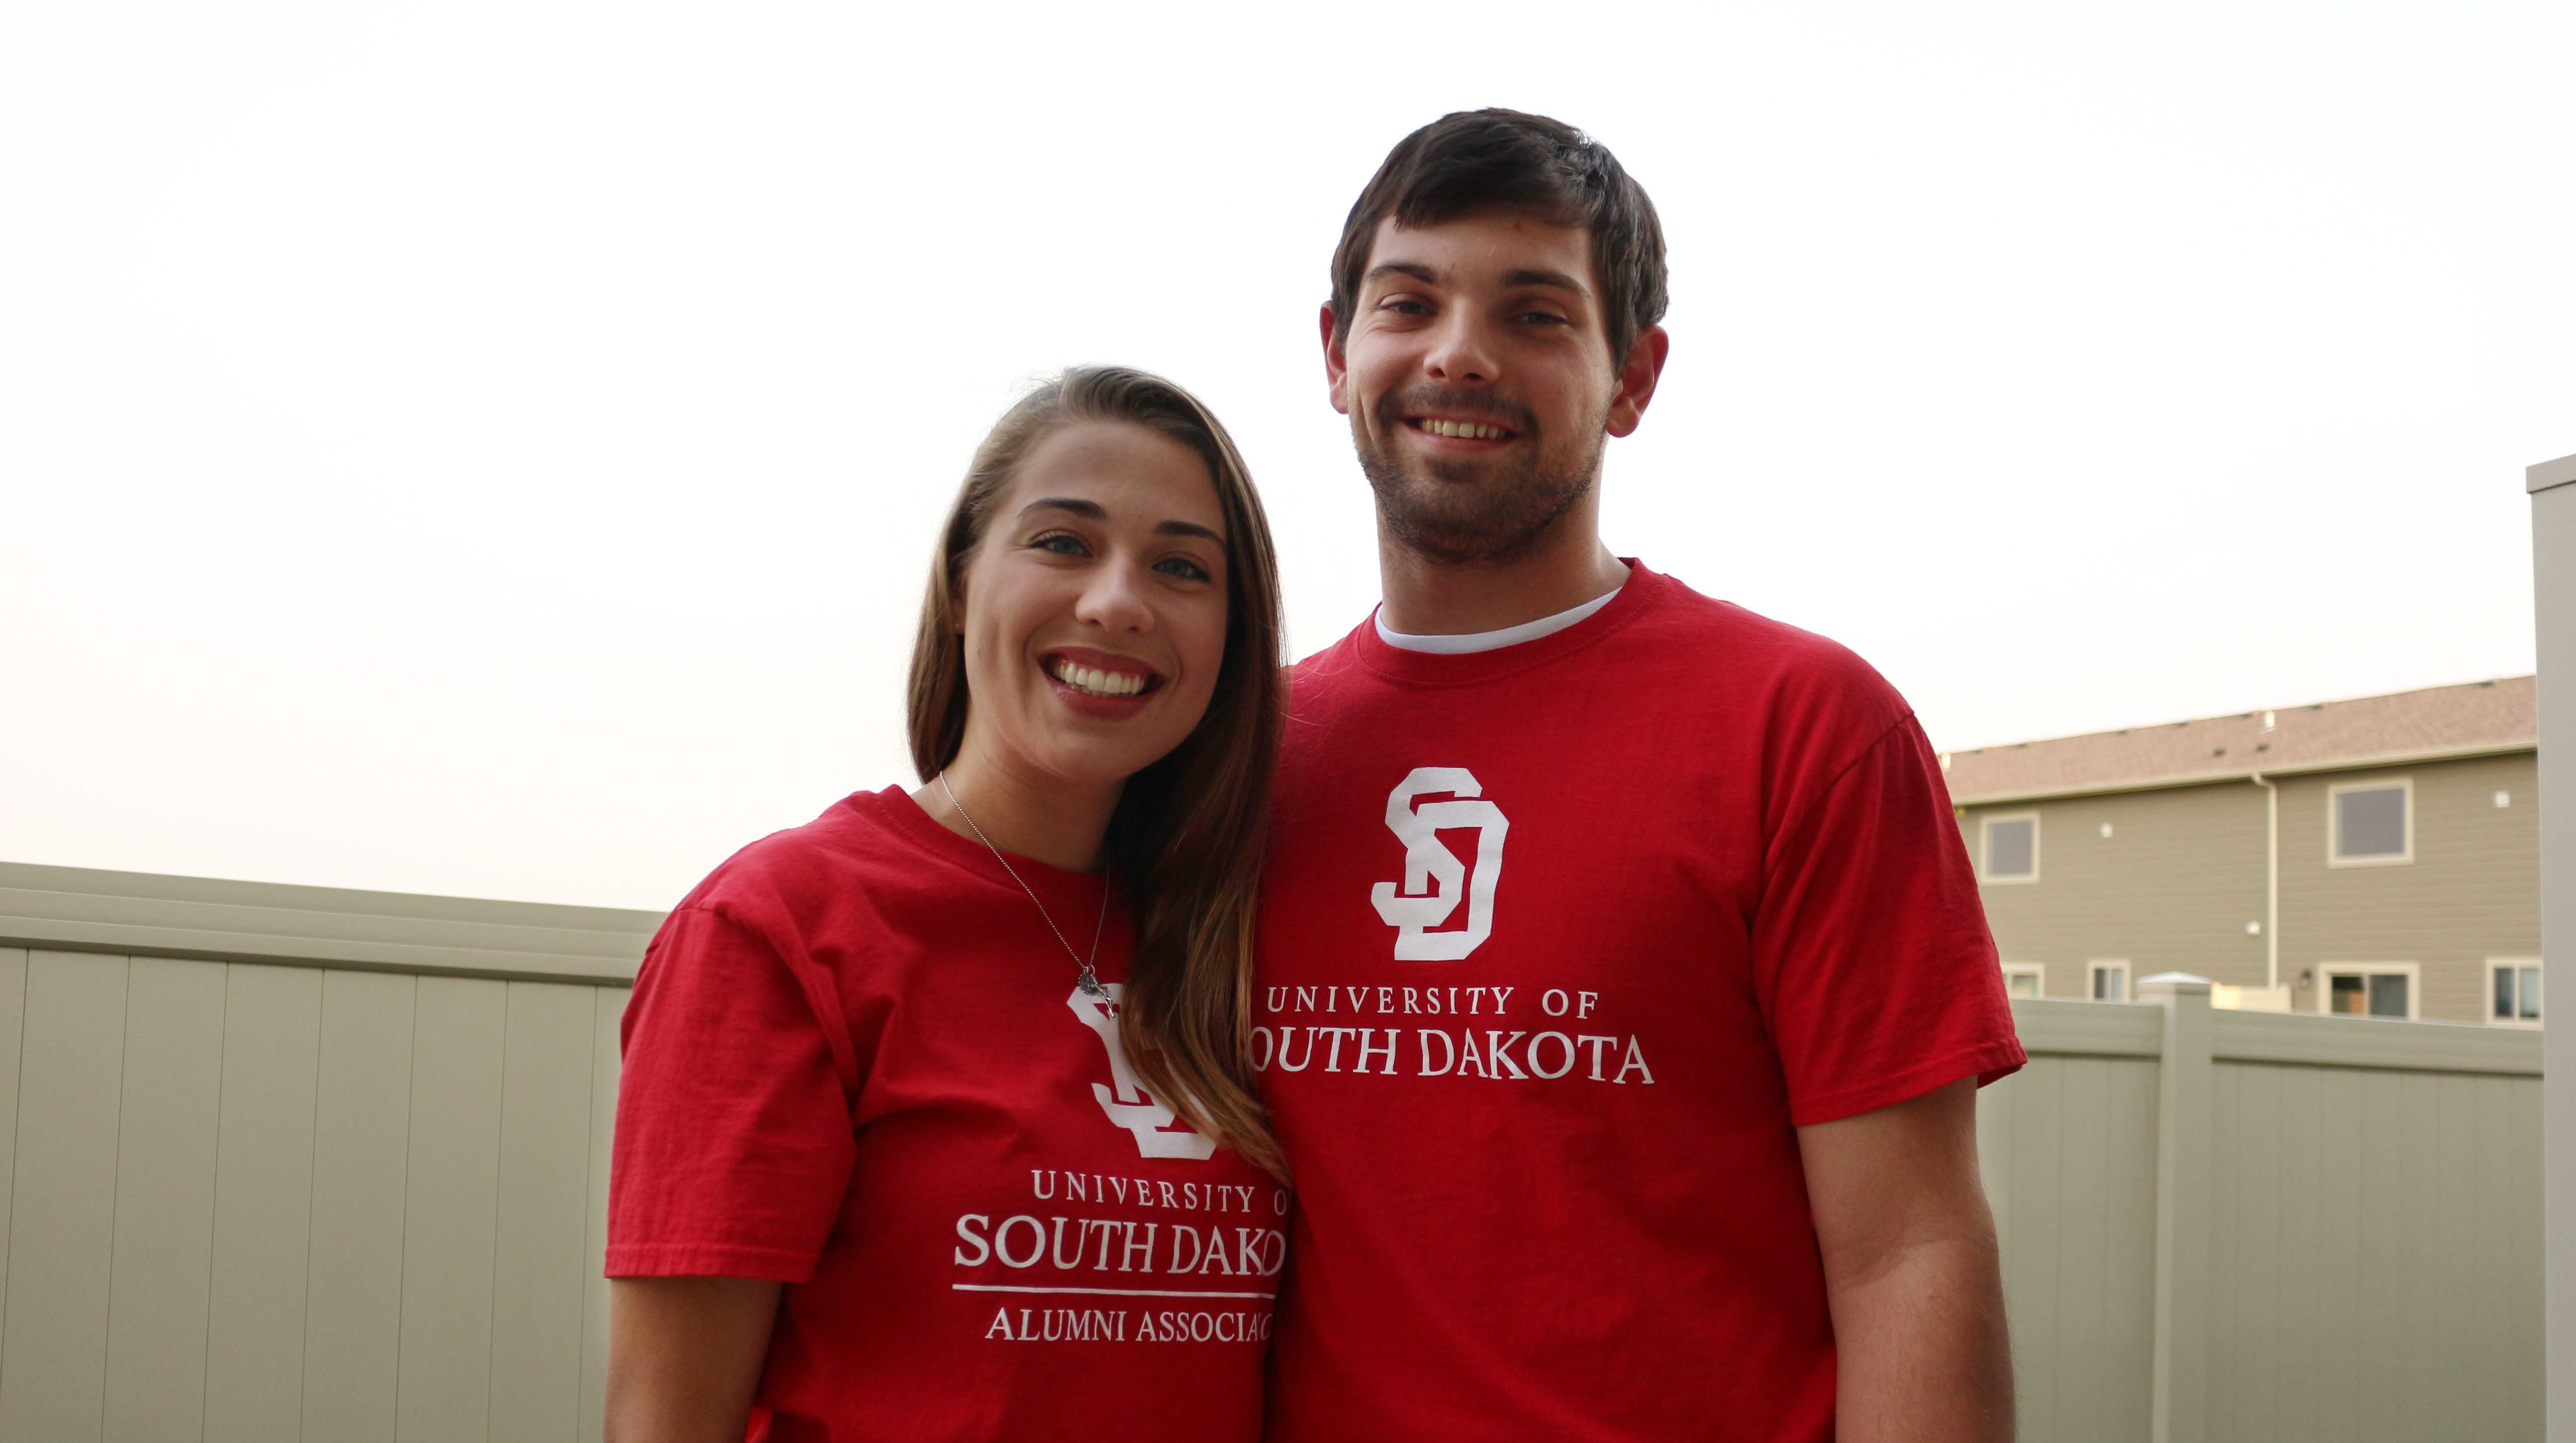 """IAN LACK Arianne Aasen and Casson Dennison wear T-shirts the University of South Dakota Alumni Association sent them to commemorate their engagement and acknowledge the SDSU-USD rivalry. On the back, Dennison's reads, """"I love a Coyote,"""" while Aasen's reads, """"Once a Coyote, Always a Coyote."""""""